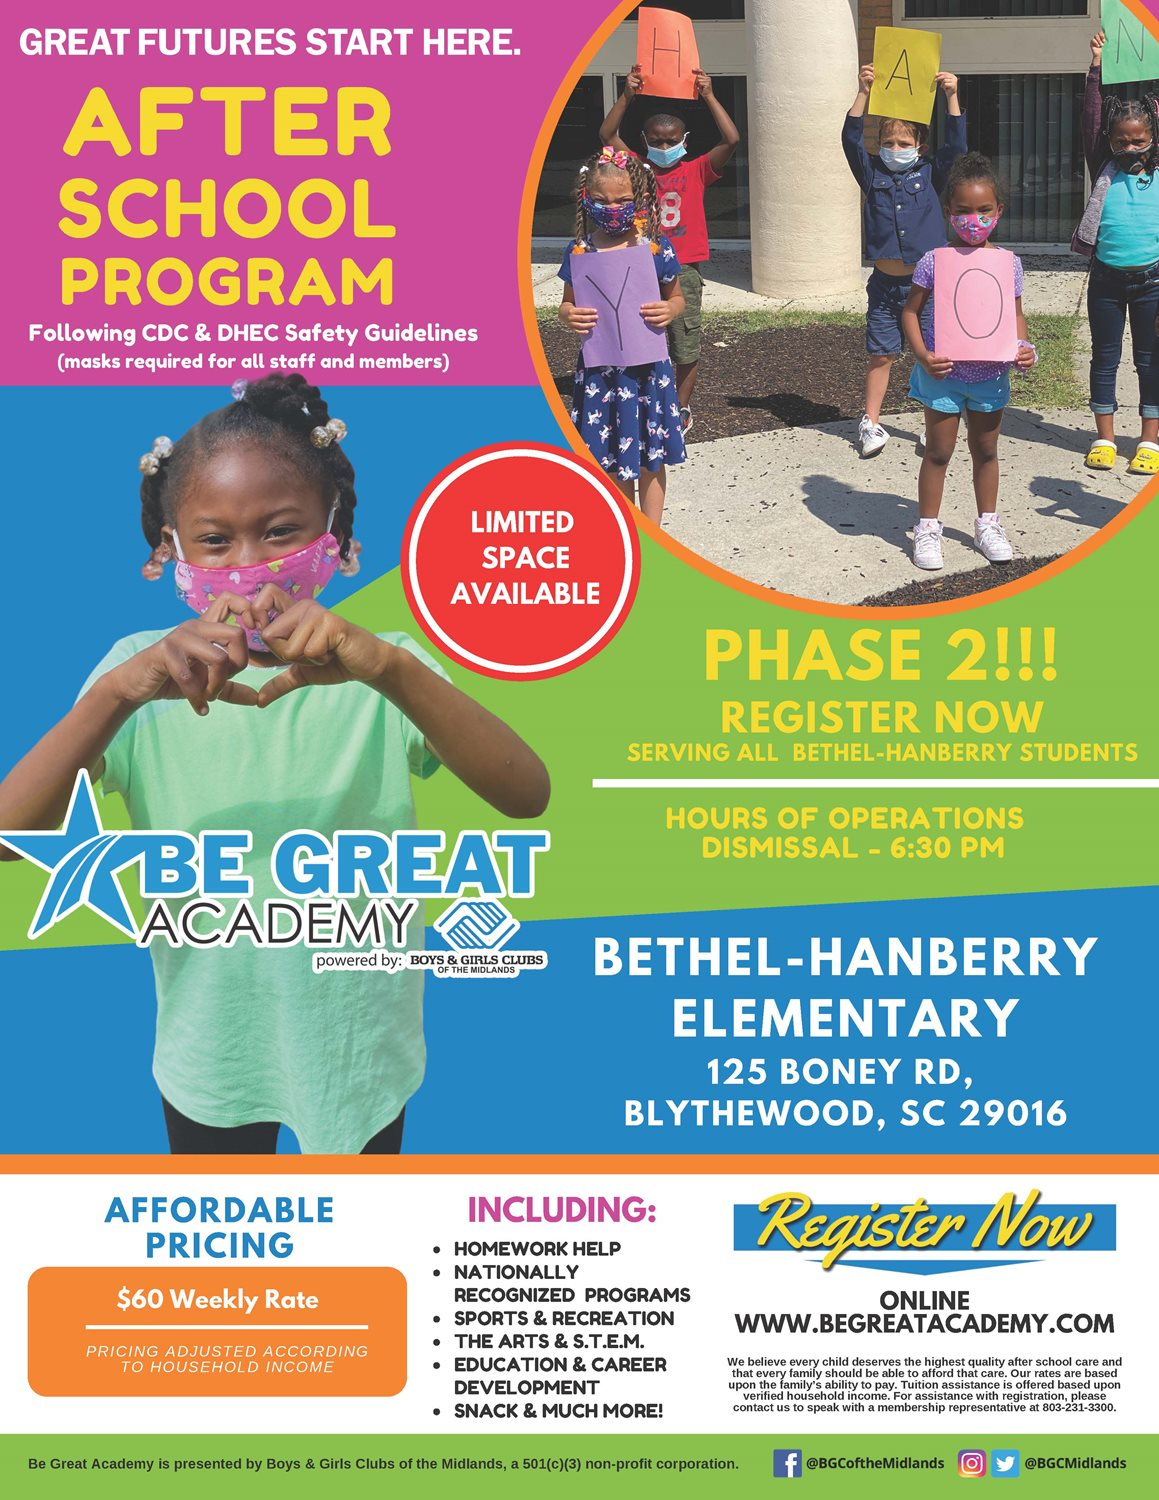 Bethel-Hanberry-BE-GREAT-Academy-PHASE-2-Recruitment-Flyer-(1).jpg